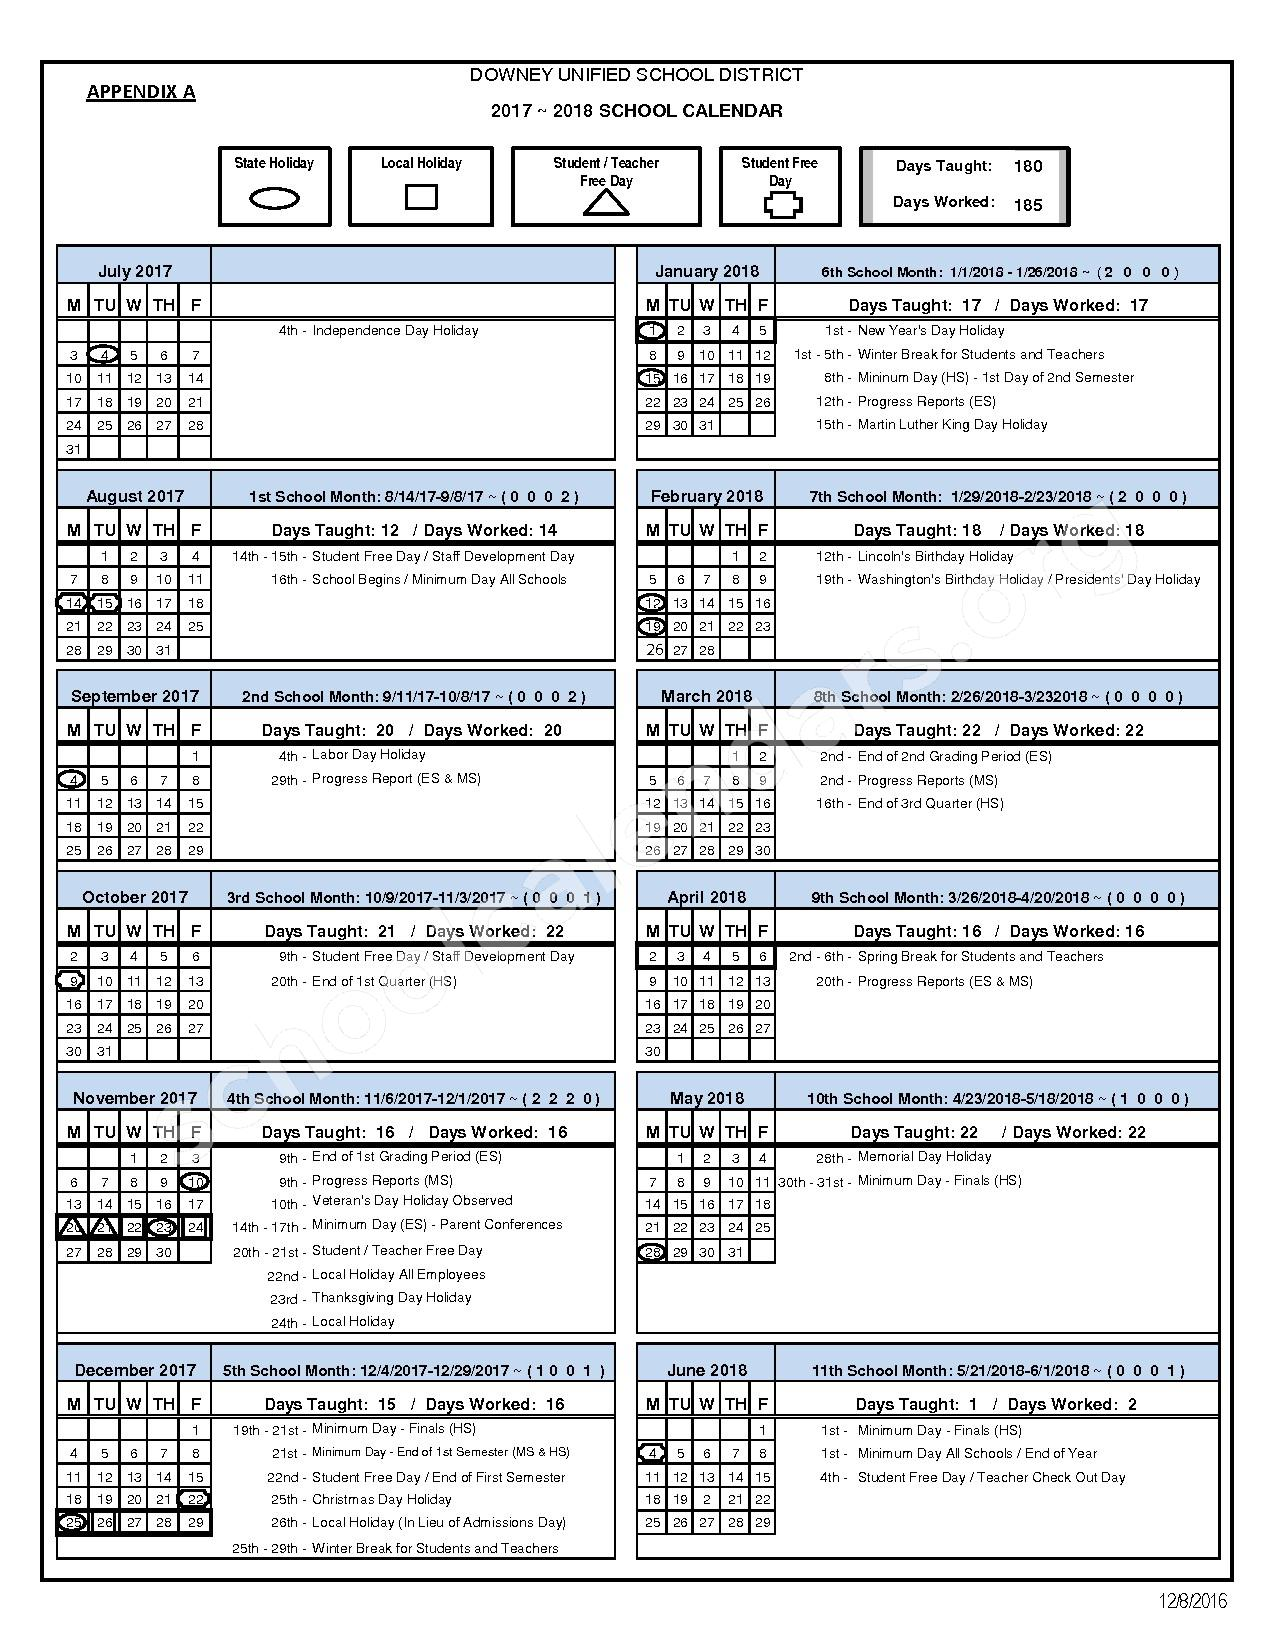 2017 - 2018 School Calendar – Downey Unified School District – page 1